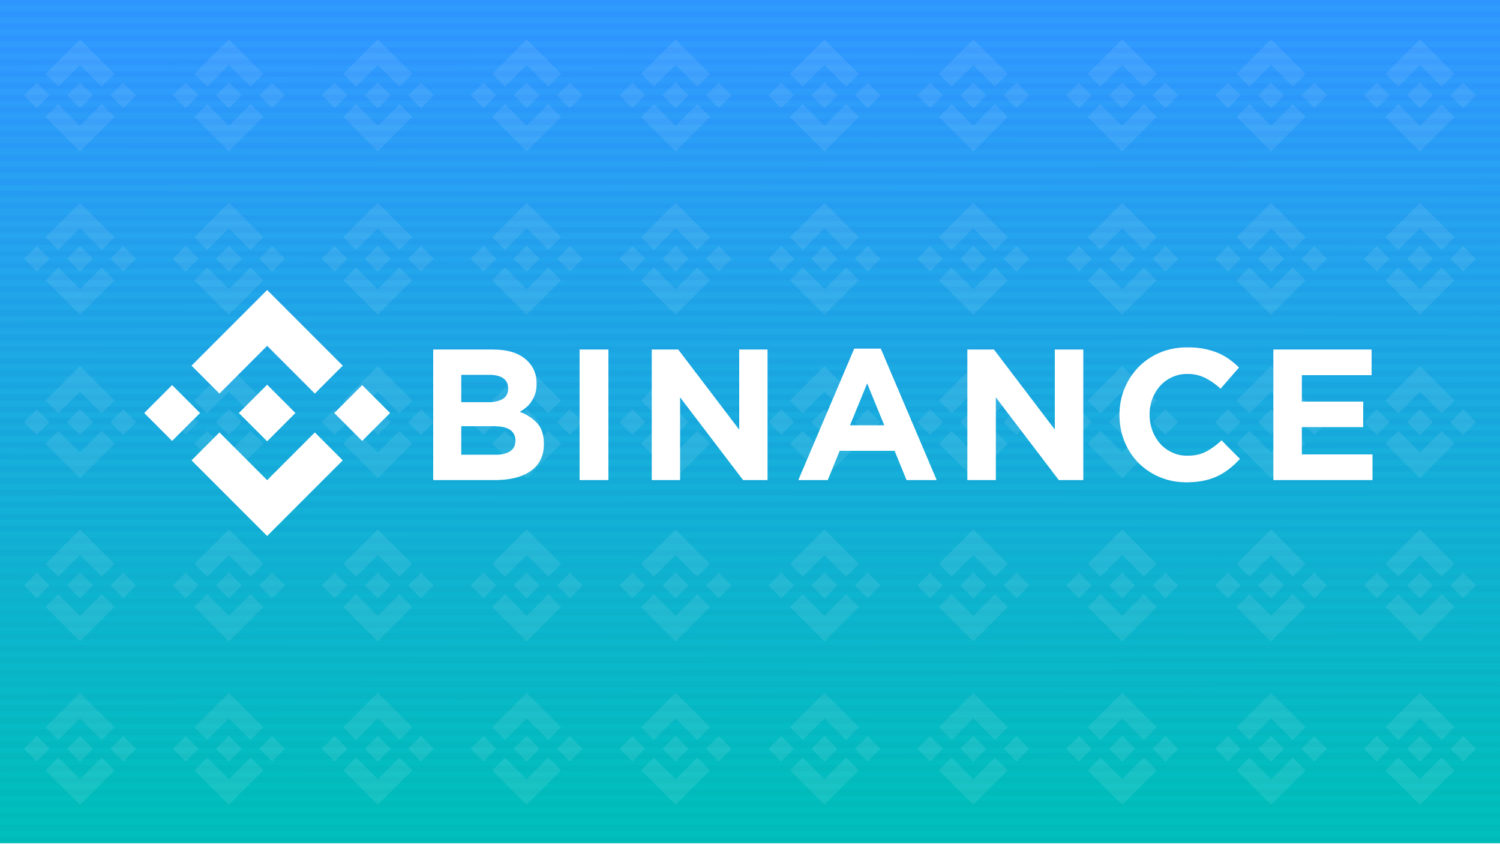 Binance announces investment in crypto hedge fund Multicoin Capital